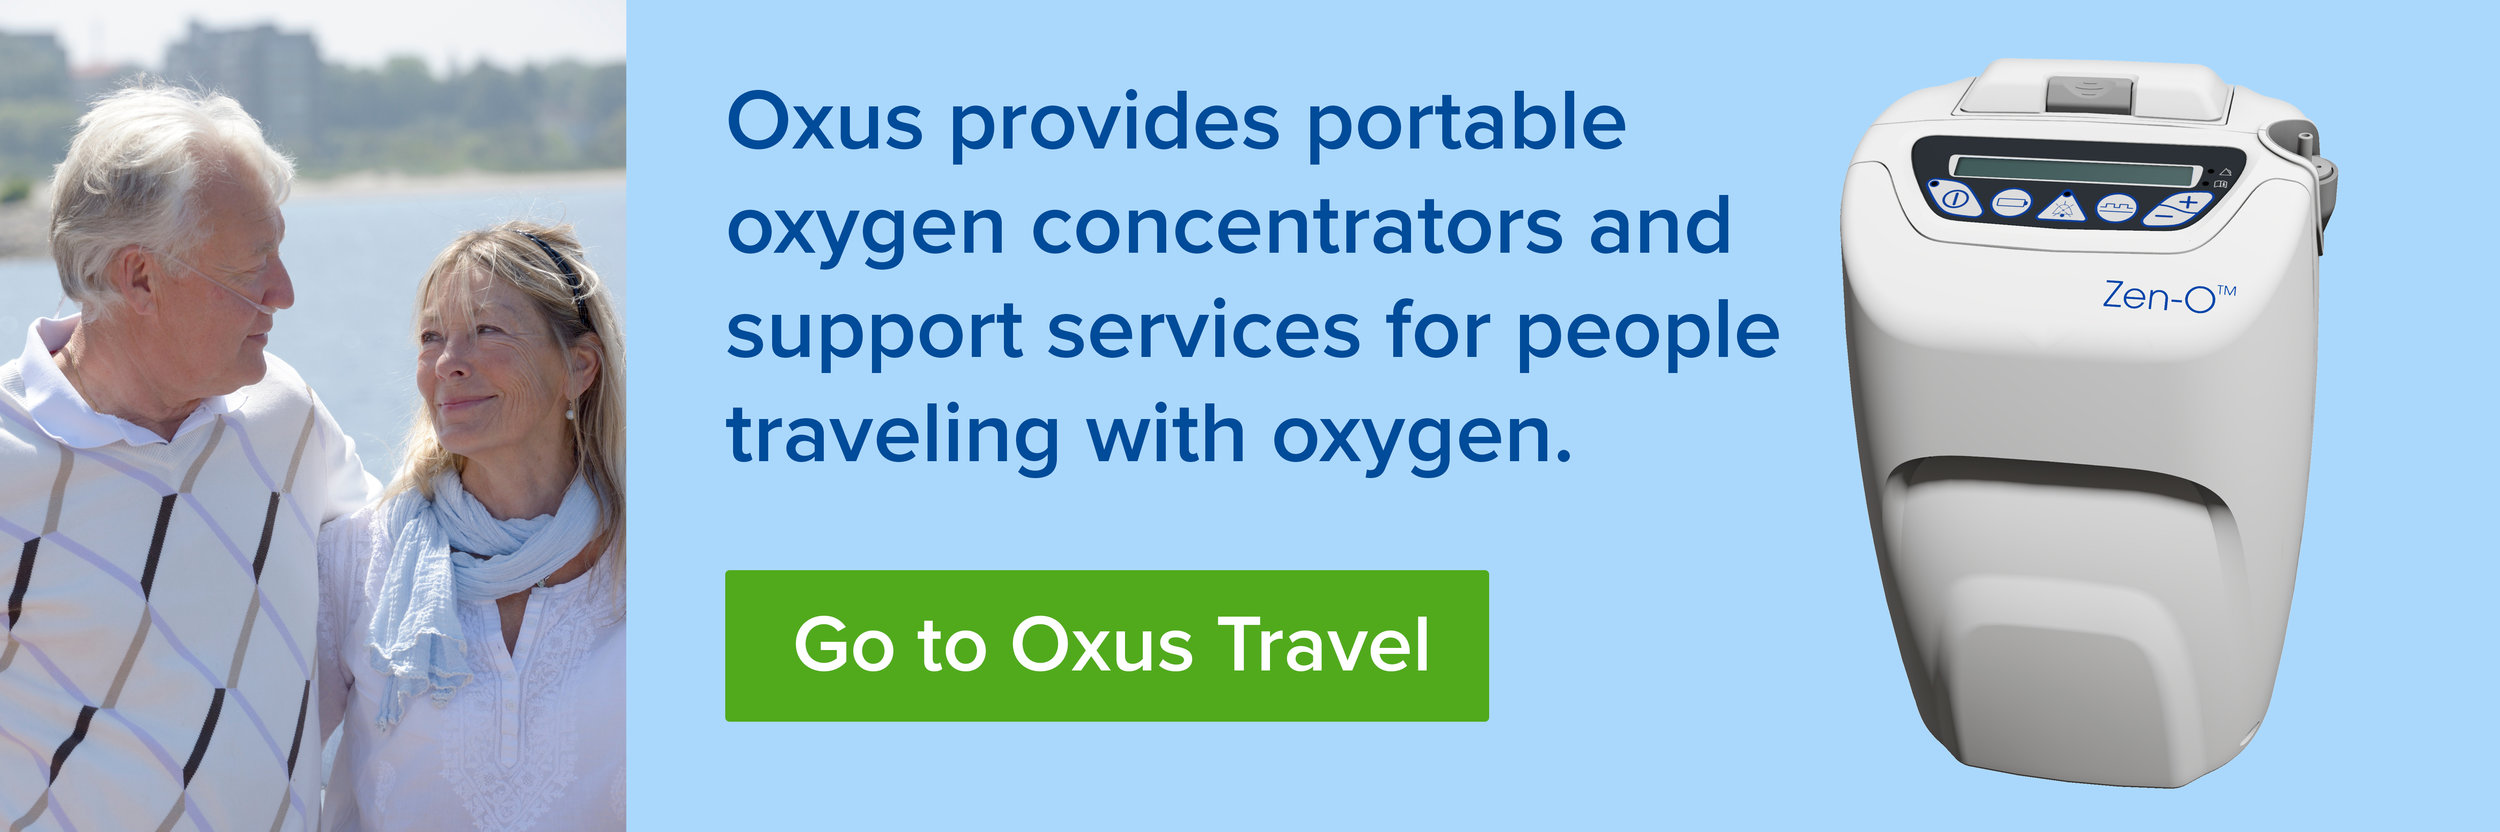 Oxus Travel Banner.jpg